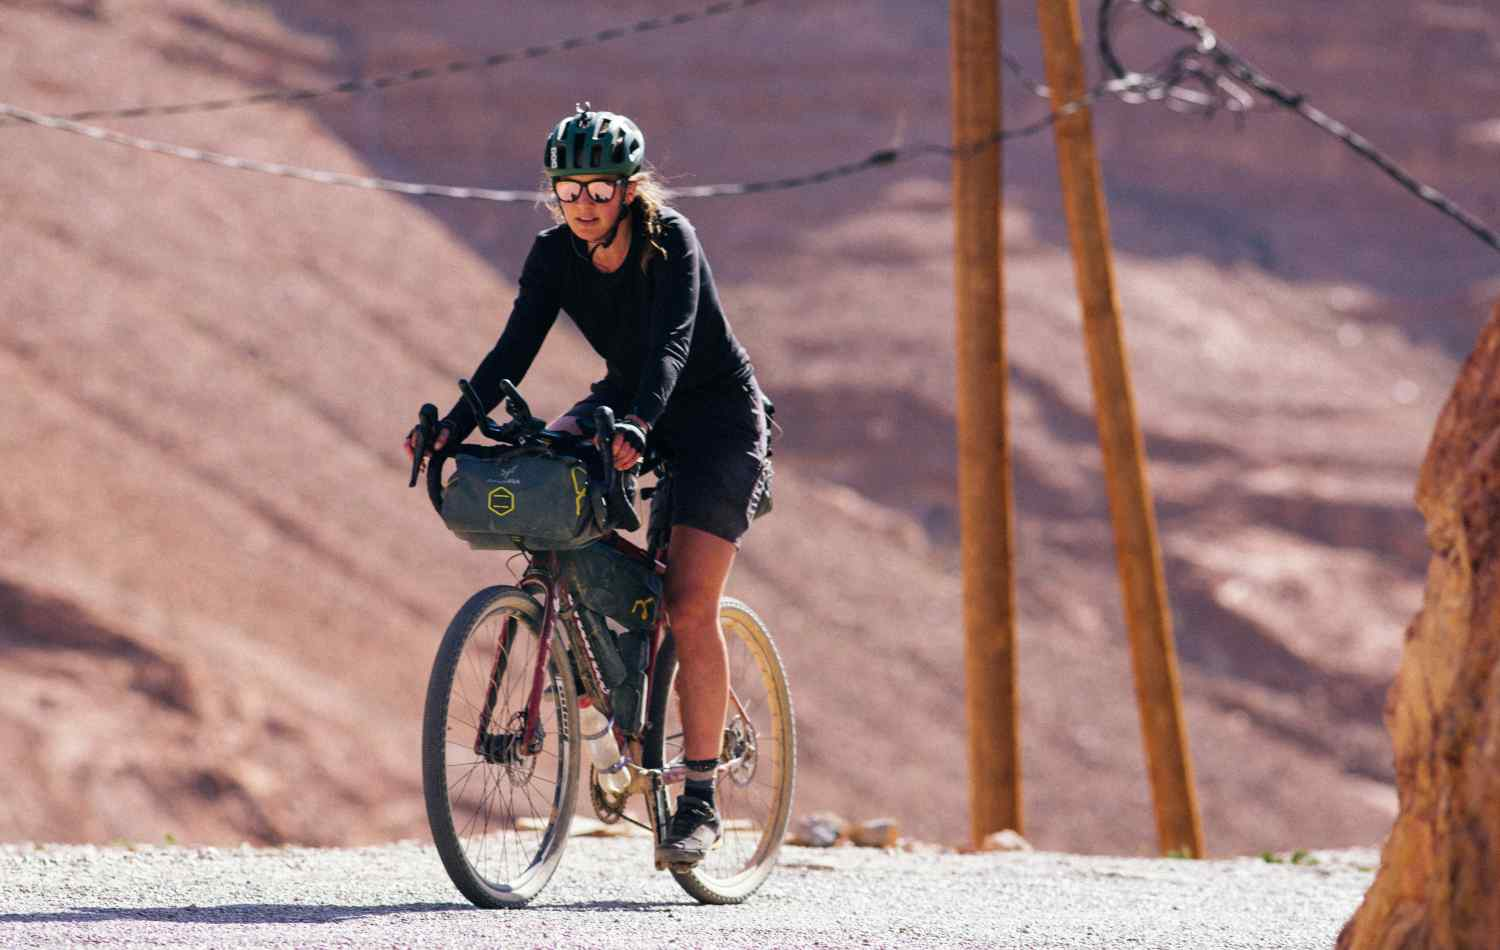 A woman riding a bike with a saddle bag and a frame bag on it